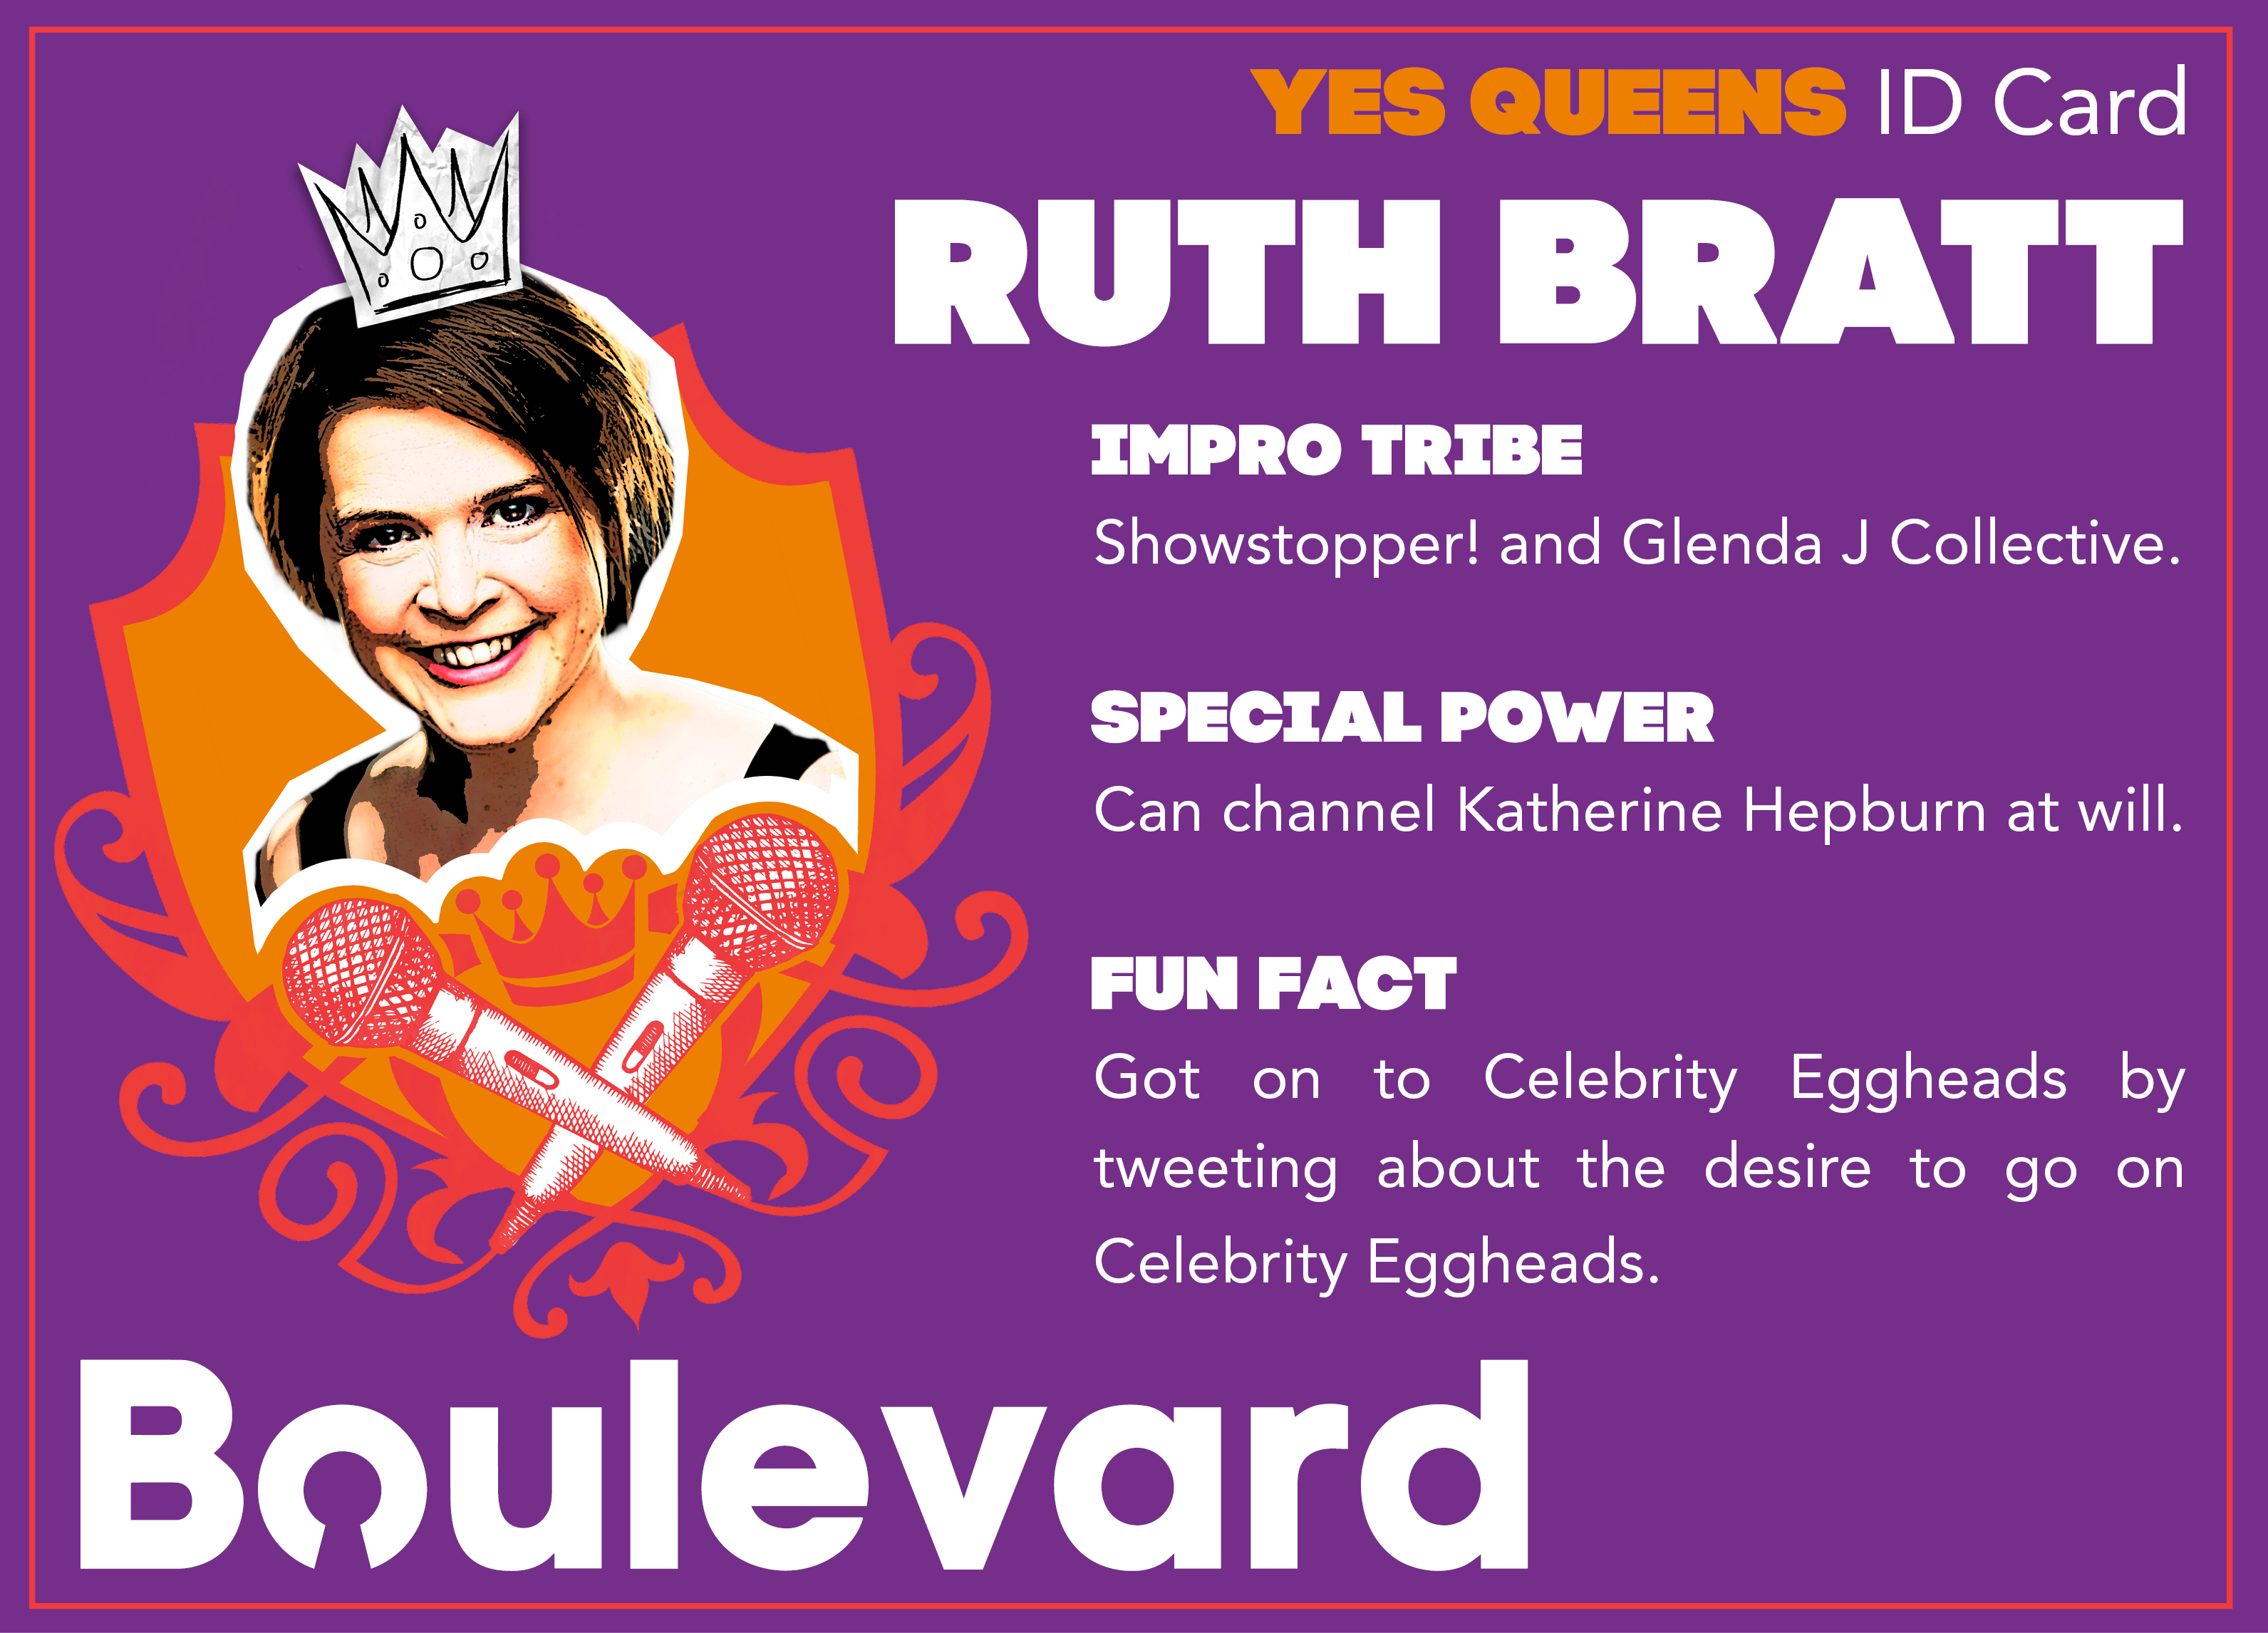 Yes Queens ID Card Ruth